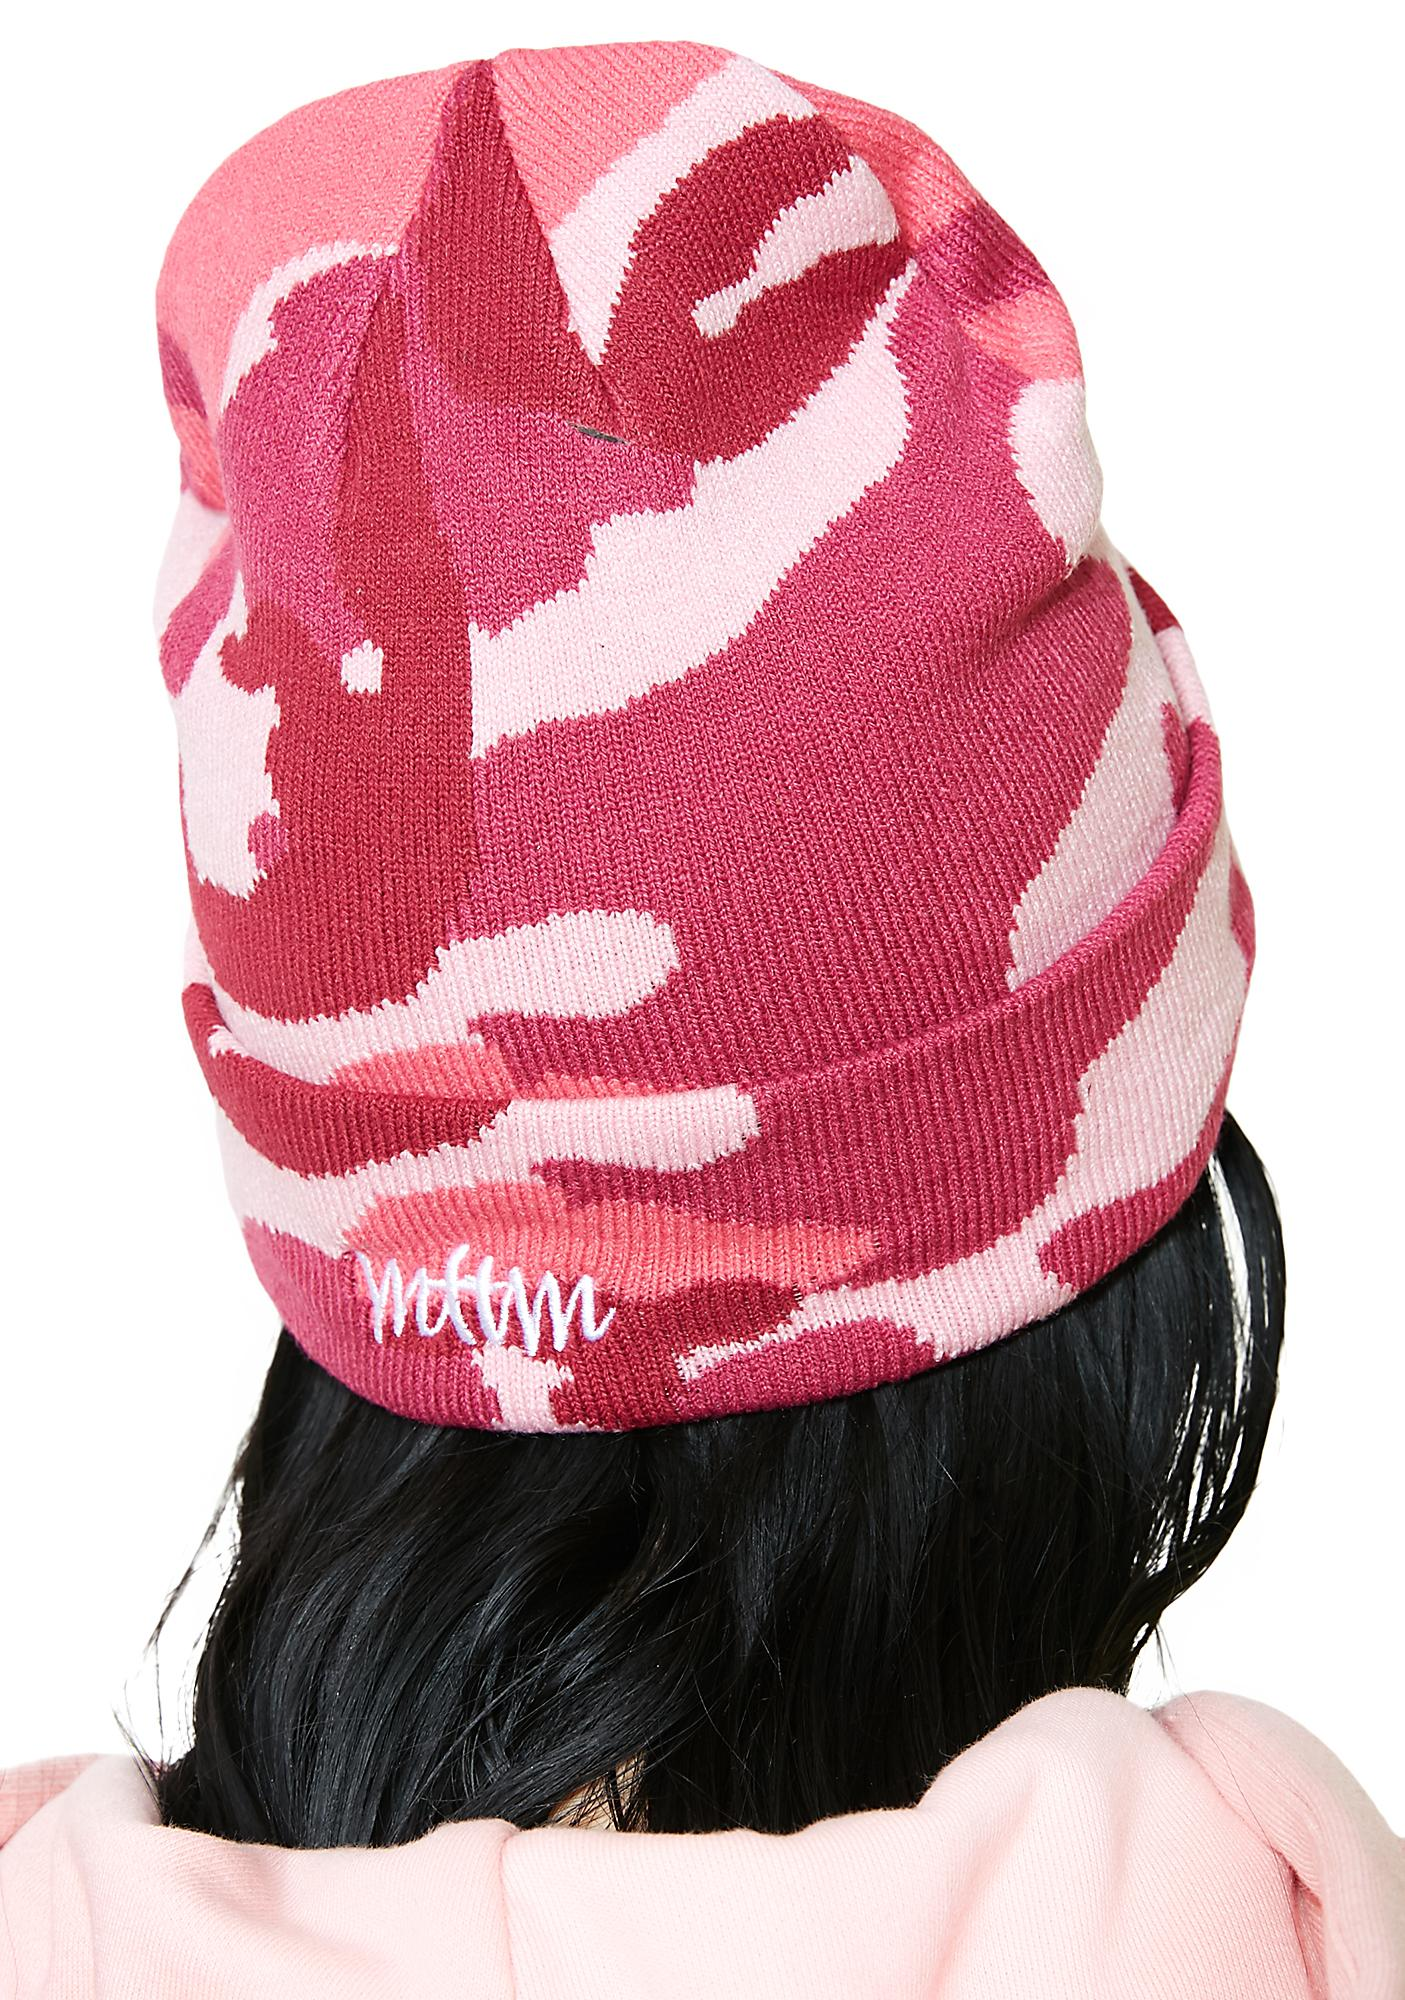 64d00221b59 ... Married to the Mob x Penthouse Pink Camo Beanie ...